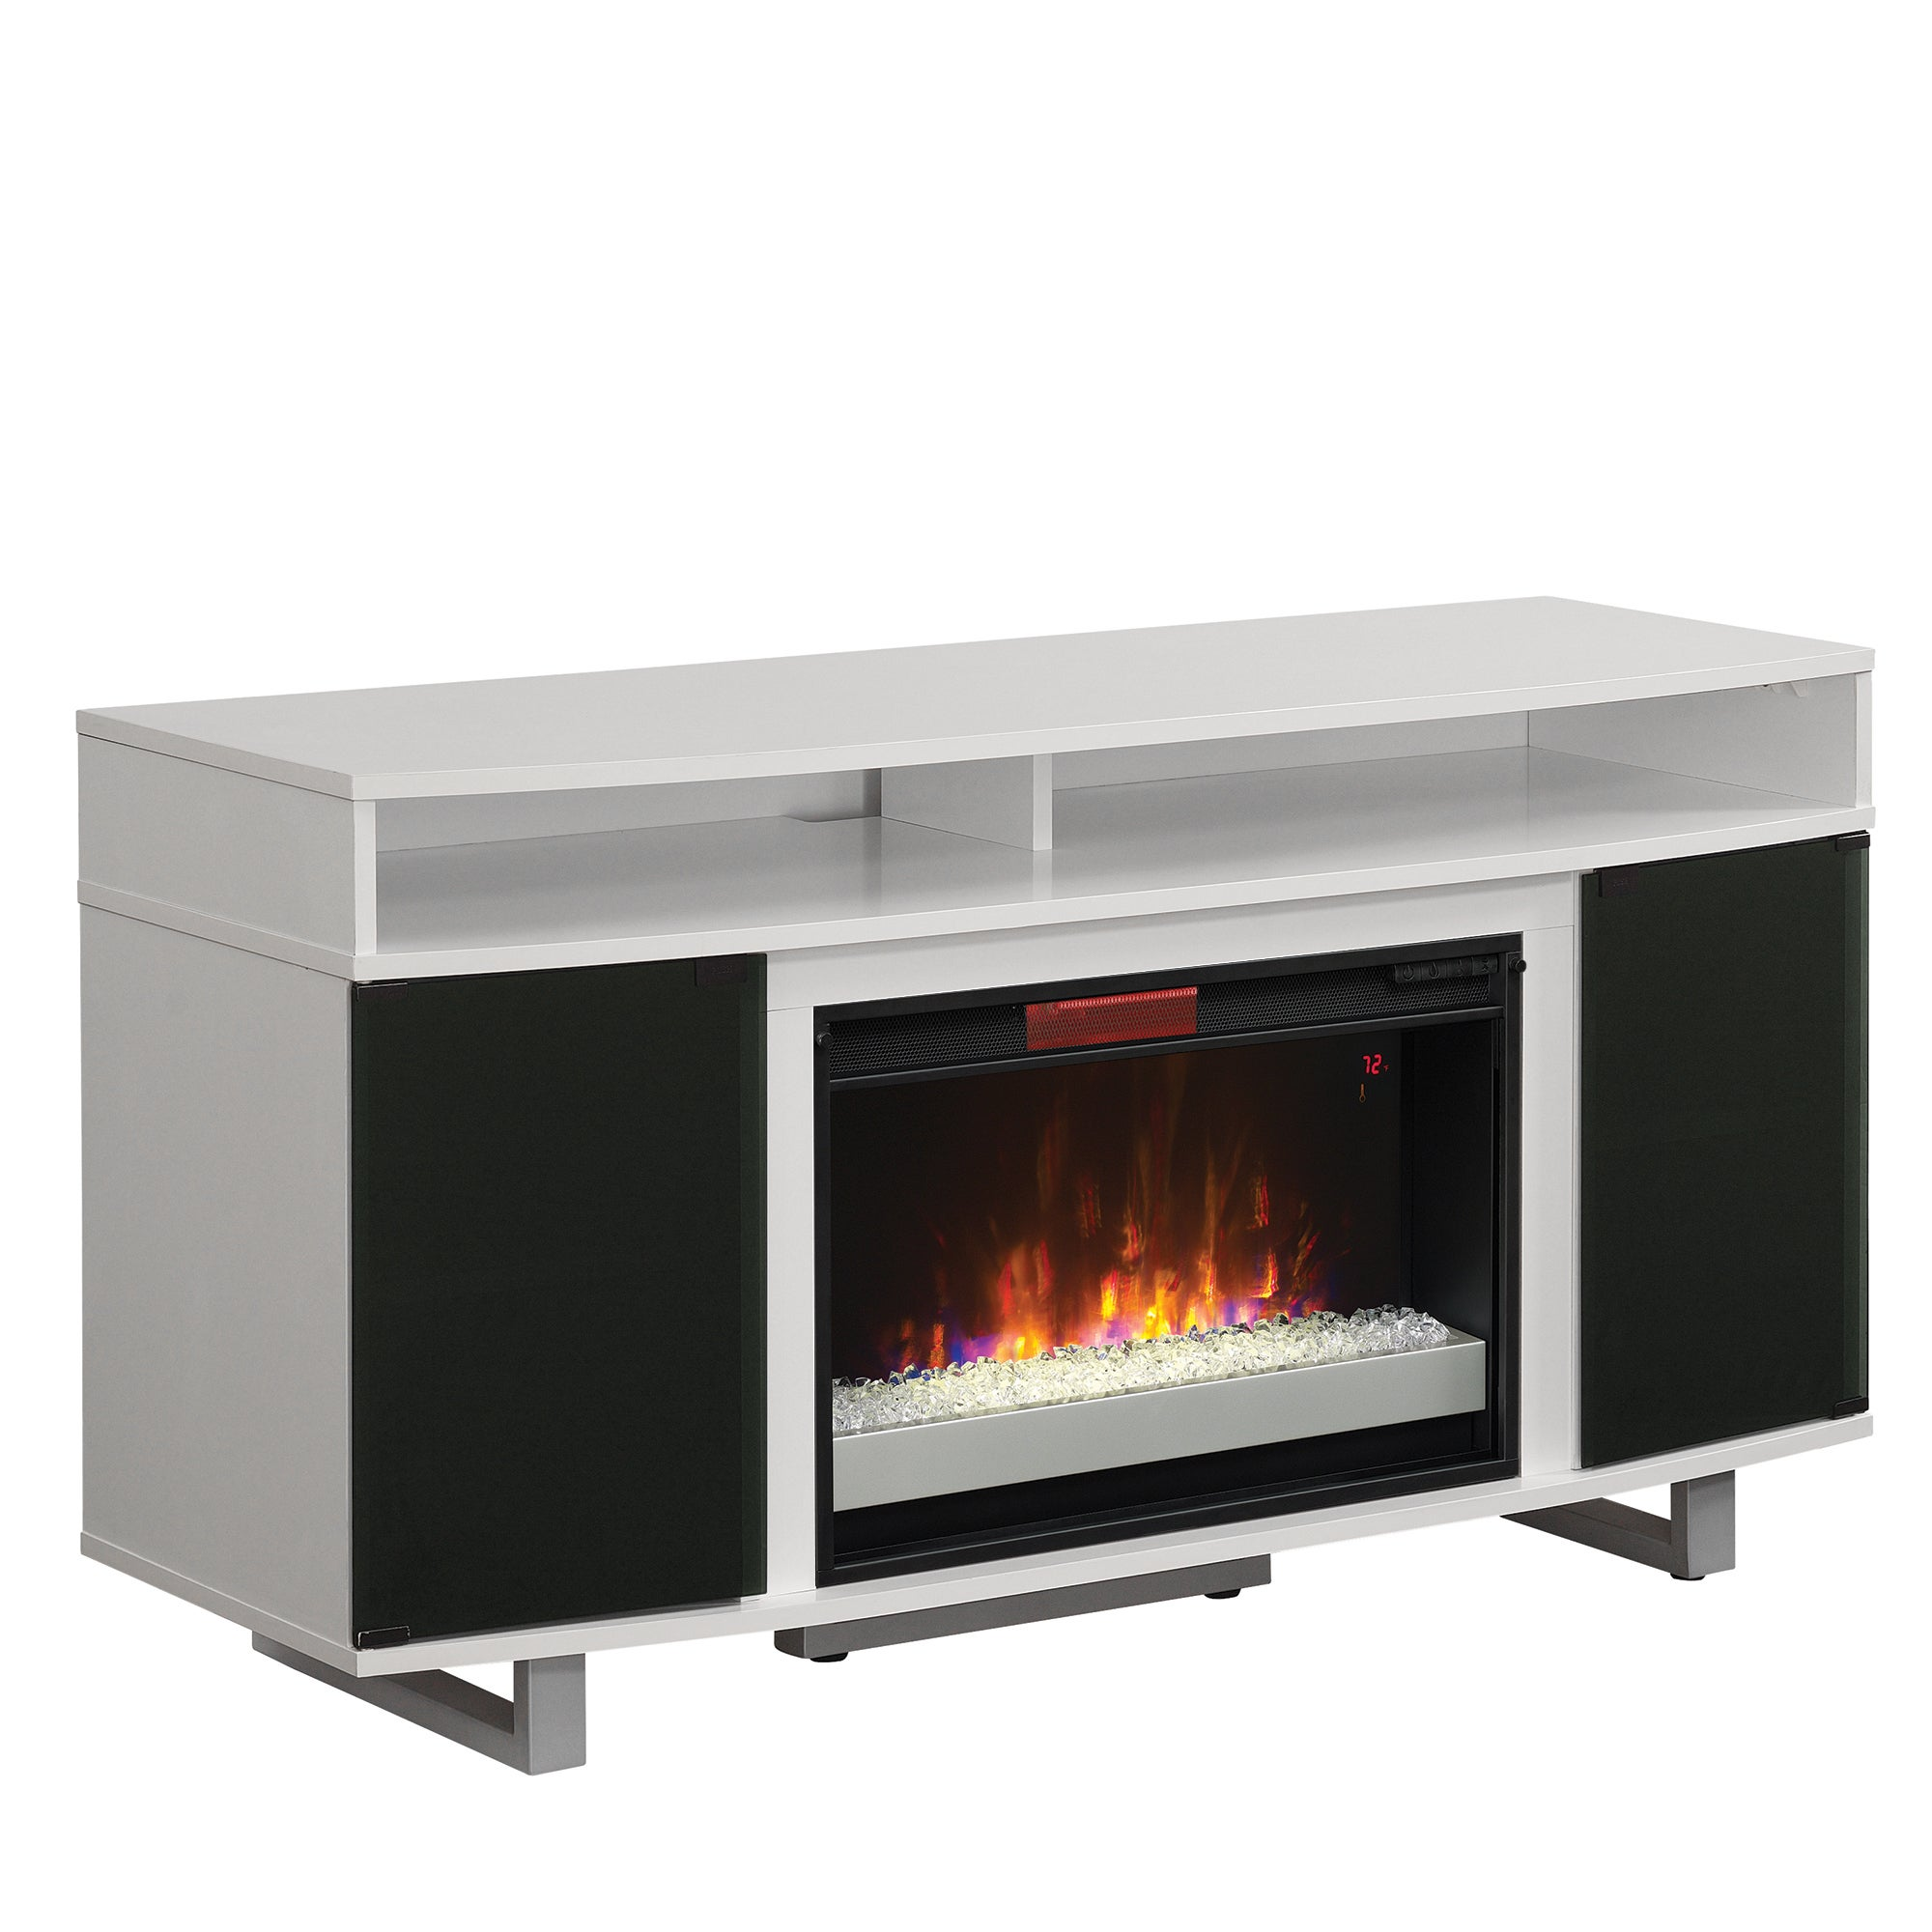 Enterprise Lite Tv Stand For Tvs Up To 60 With 26 Infrared Quartz Electric Fireplace High Gloss White Overstock 15076876